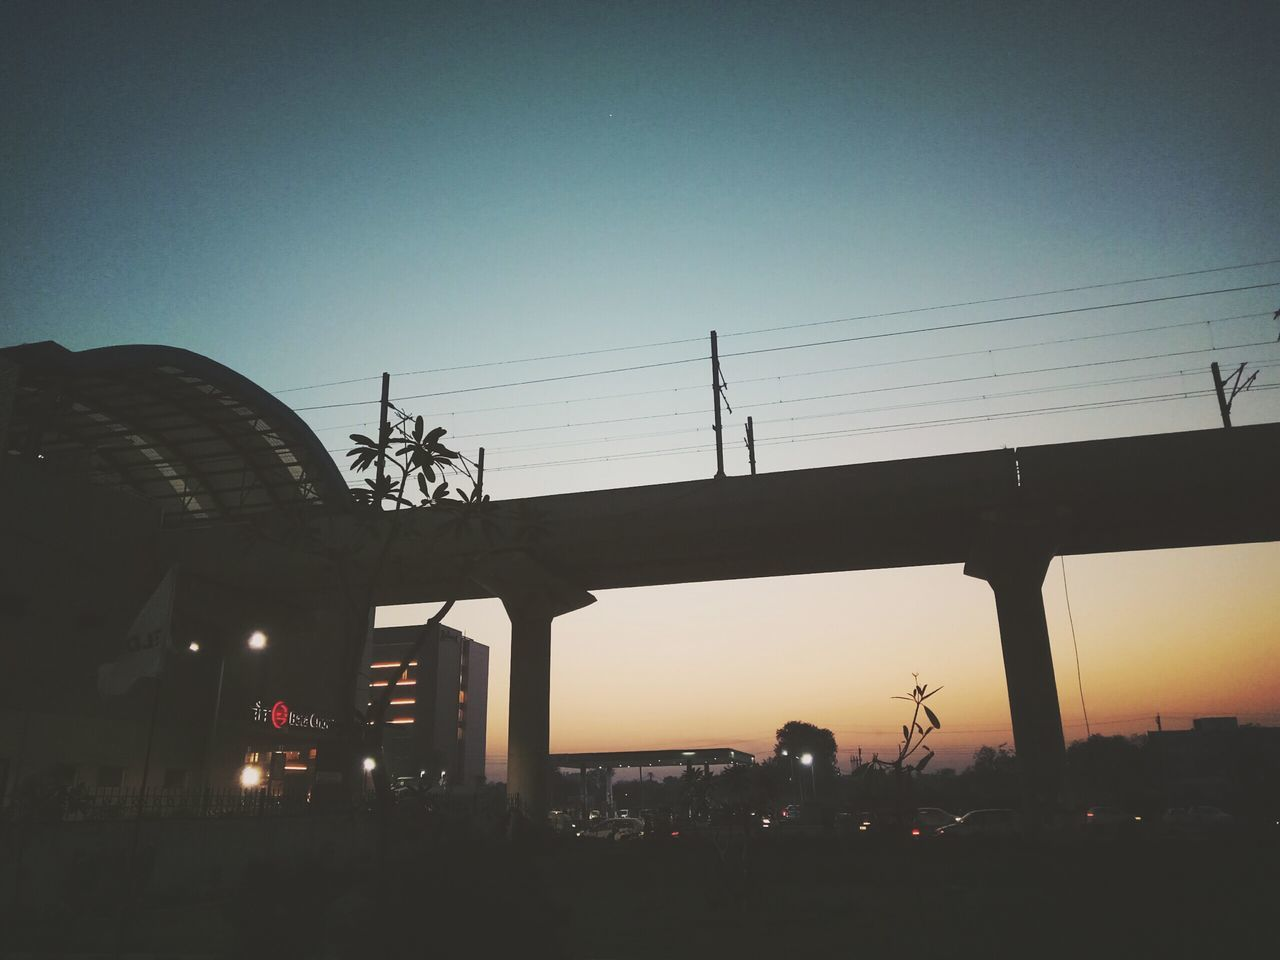 sunset, silhouette, built structure, clear sky, architecture, outdoors, sky, city, electricity pylon, nature, day, no people